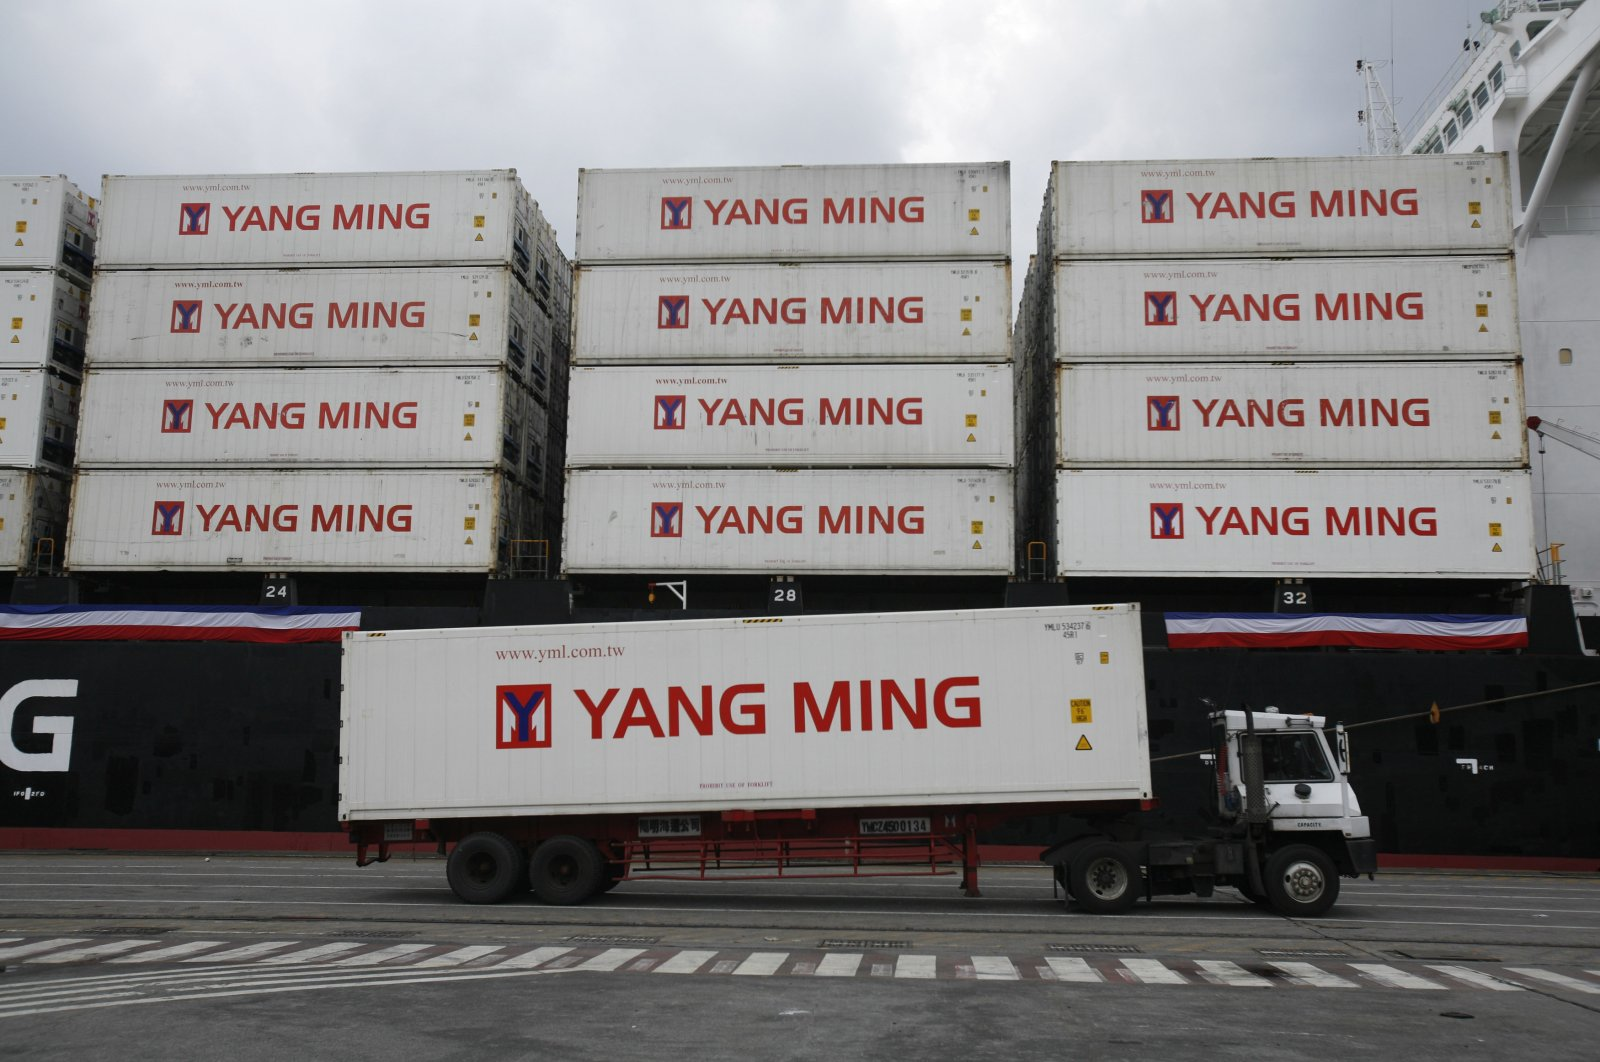 A Taiwanese shipping company loads containers on a ship in the harbor of Keelung, Taiwan, Dec. 15, 2008. (AP Photo)